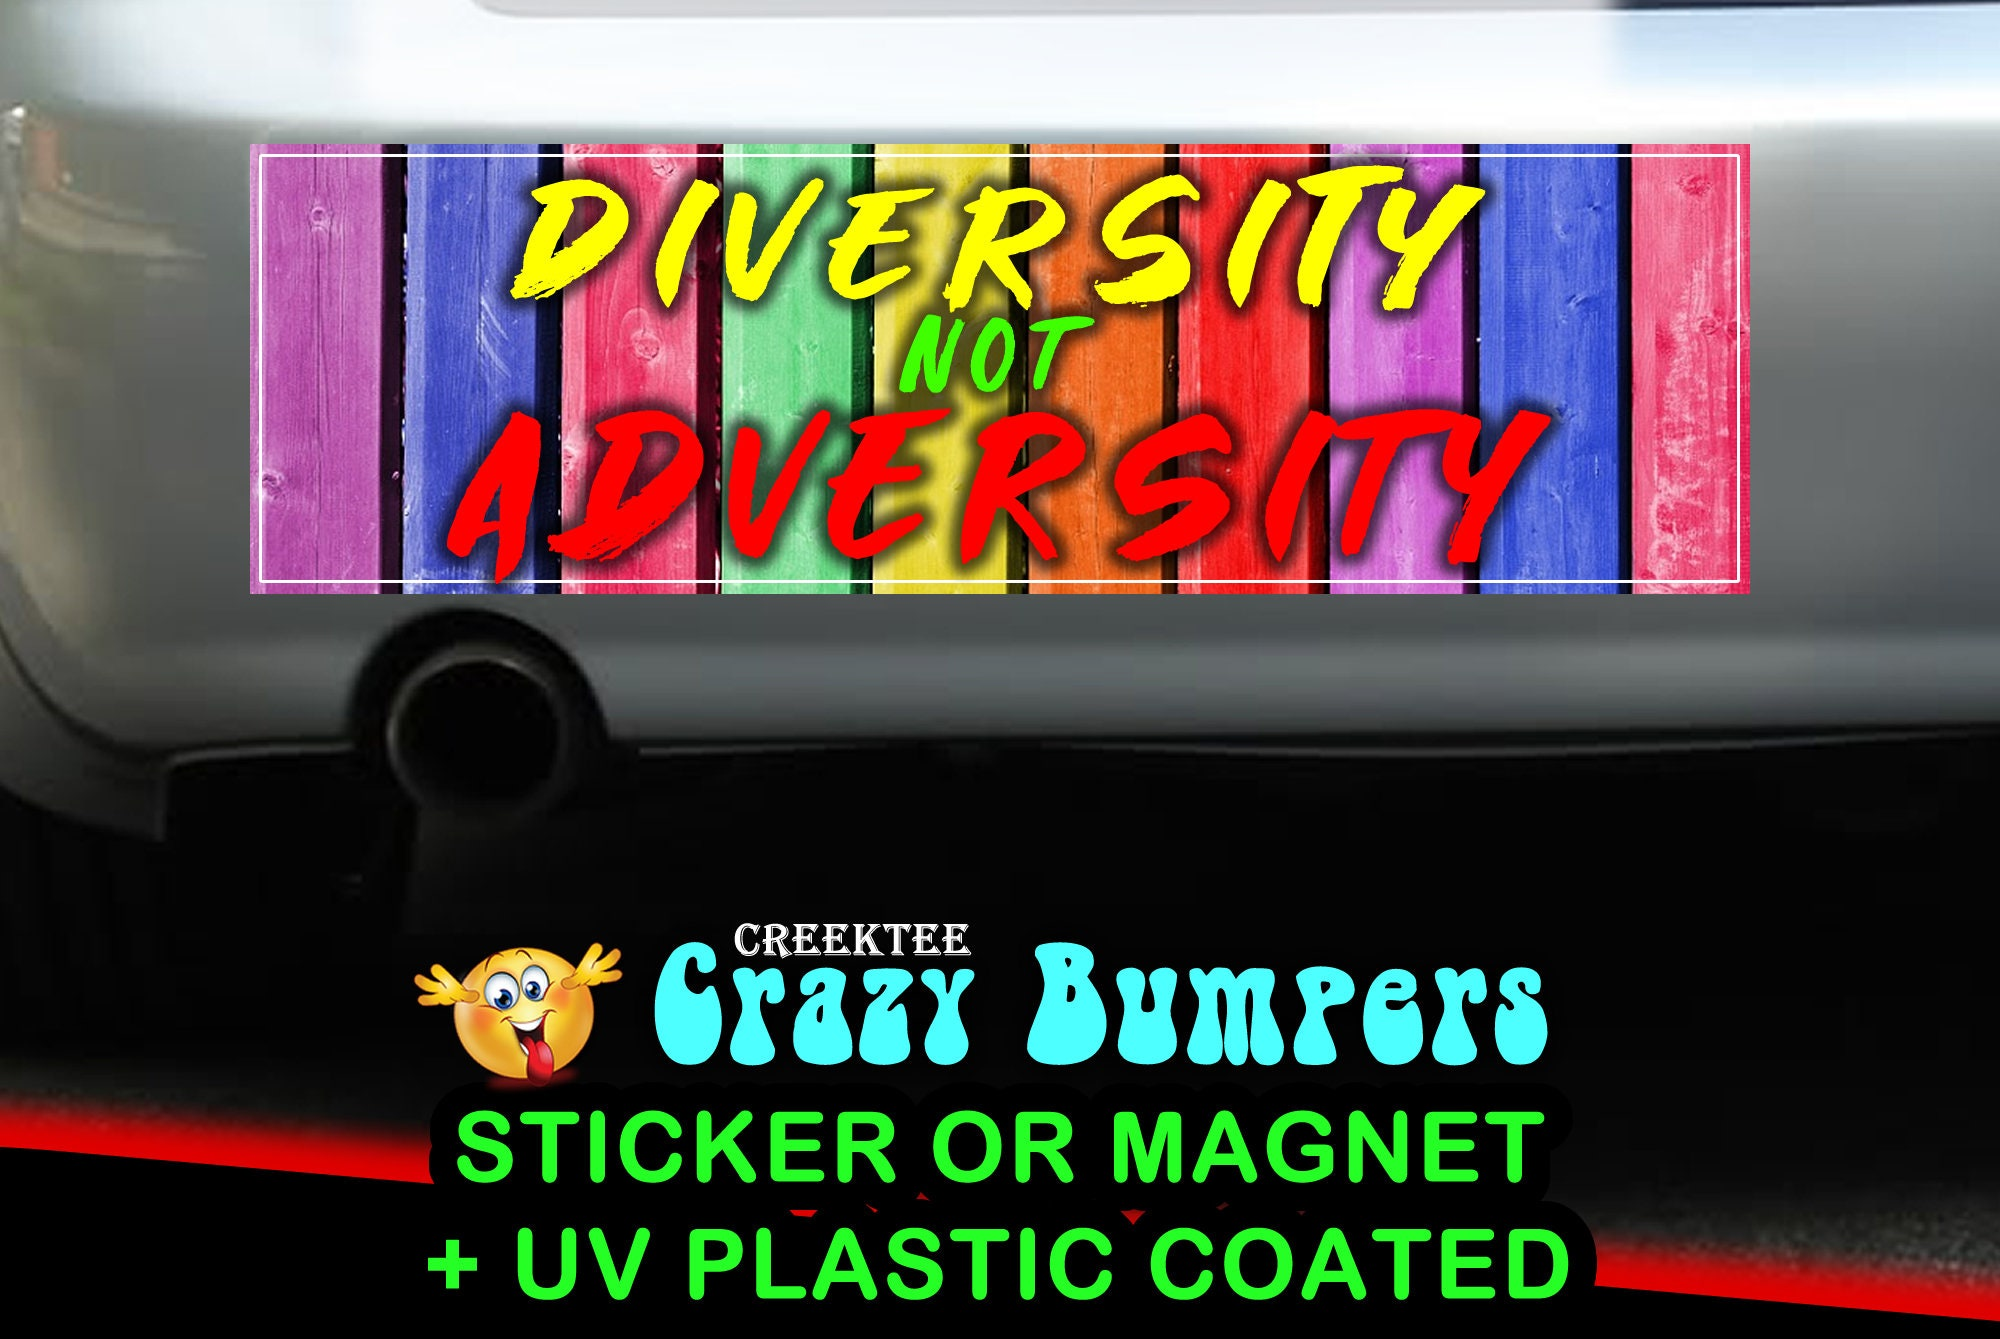 CAD$9.74 - Diversity Not Adversity 10 x 3 Bumper Sticker or Magnetic Bumper Sticker Available